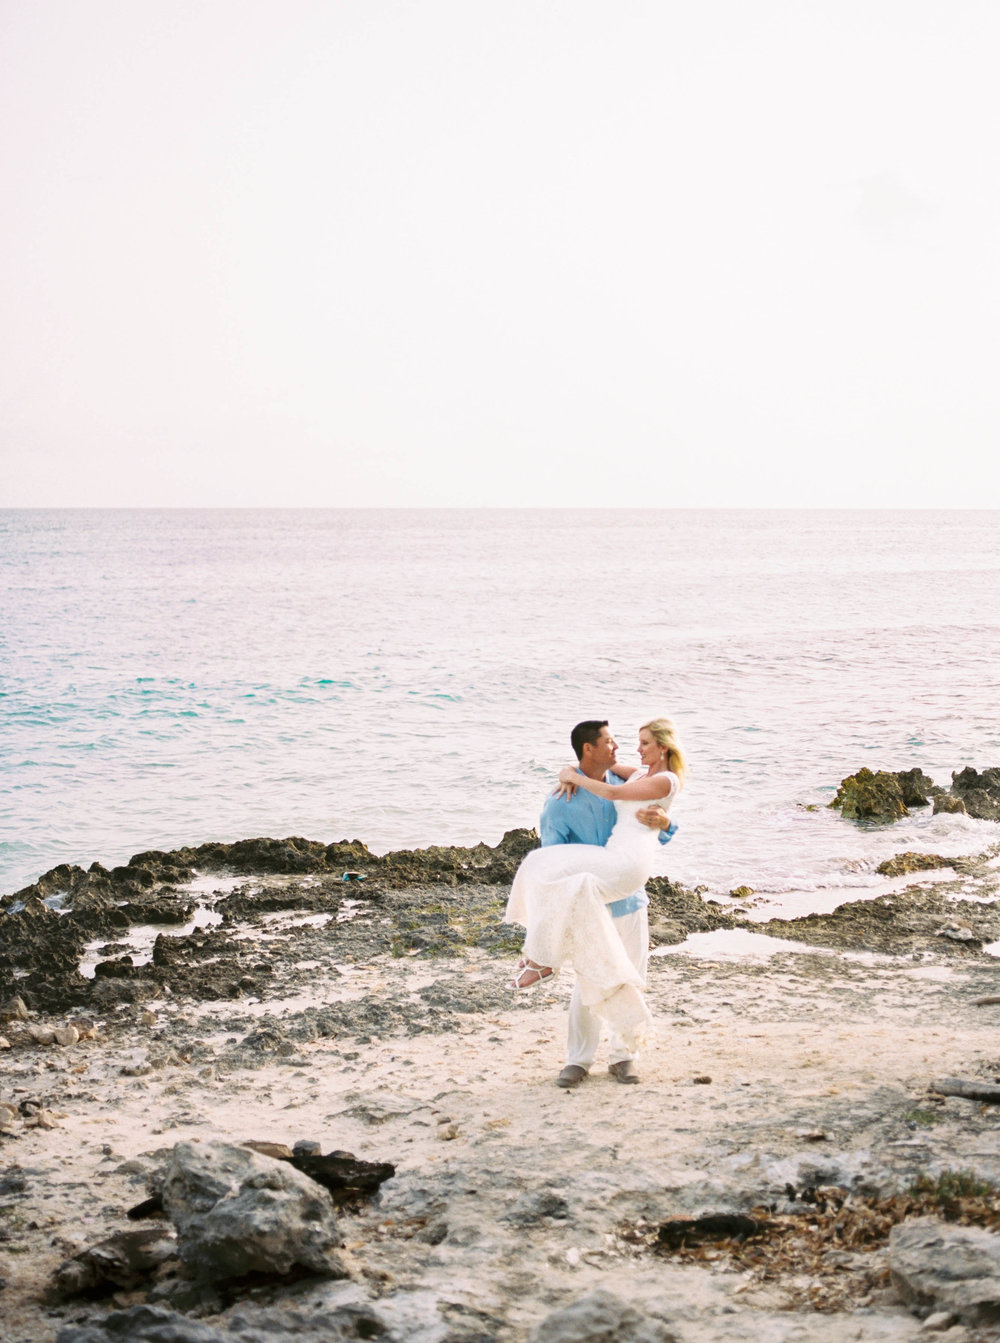 La Romana, Dominican Republic Destination Wedding. Beautiful beach wedding by a Texas destination wedding photographer. Dreams La Romana Wedding Photos.